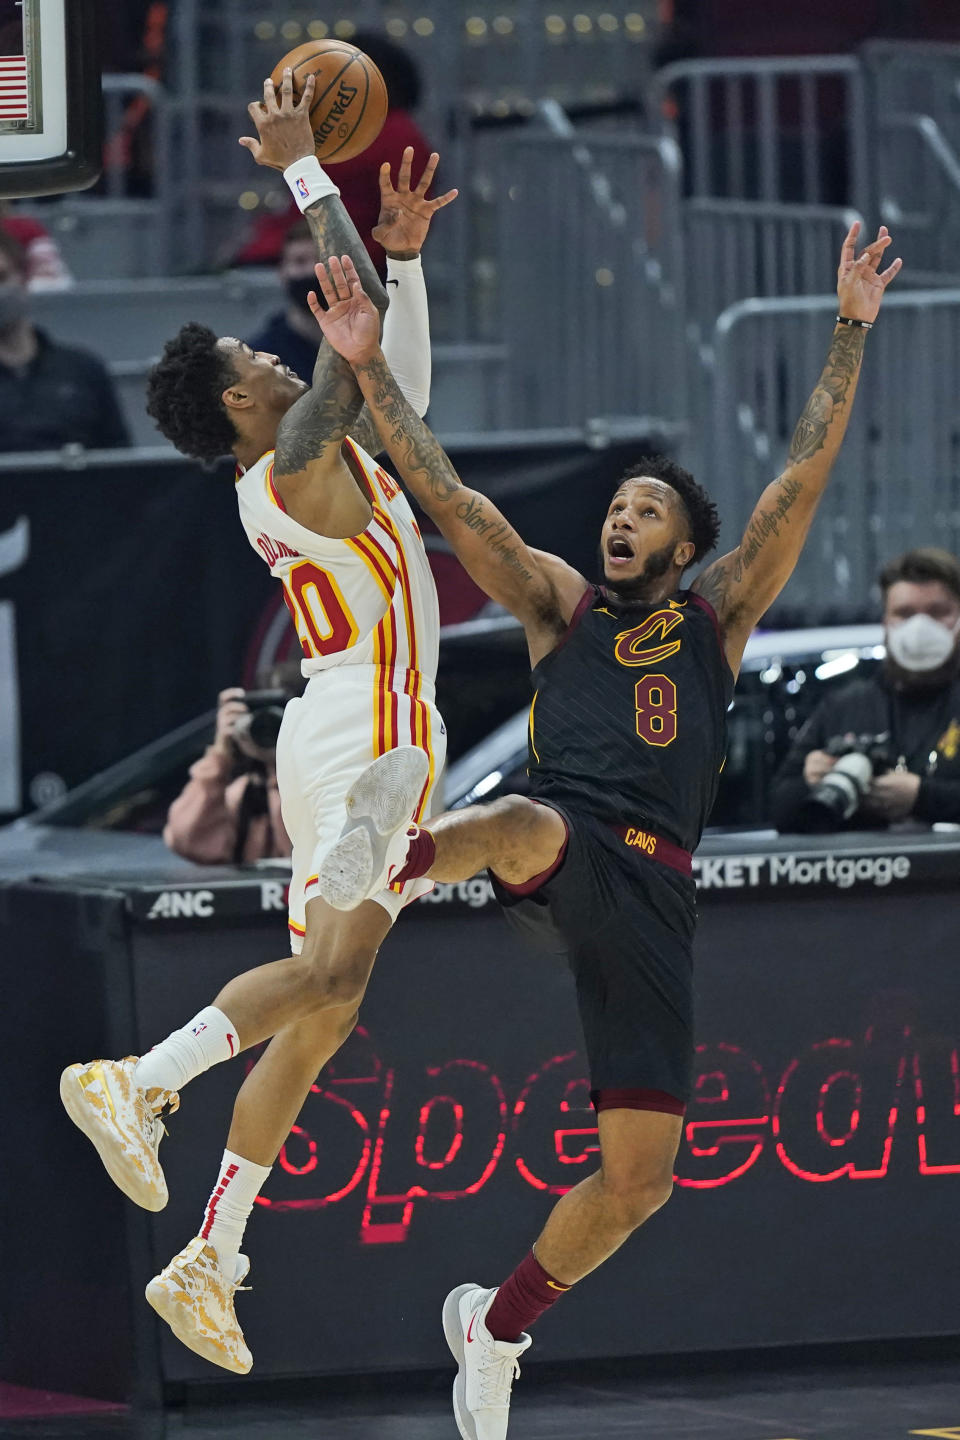 Cleveland Cavaliers' Lamar Stevens (8) and Atlanta Hawks' John Collins (20) battle for a loose ball in the first half of an NBA basketball game, Tuesday, Feb. 23, 2021, in Cleveland. Stevens was called for the foul. (AP Photo/Tony Dejak)